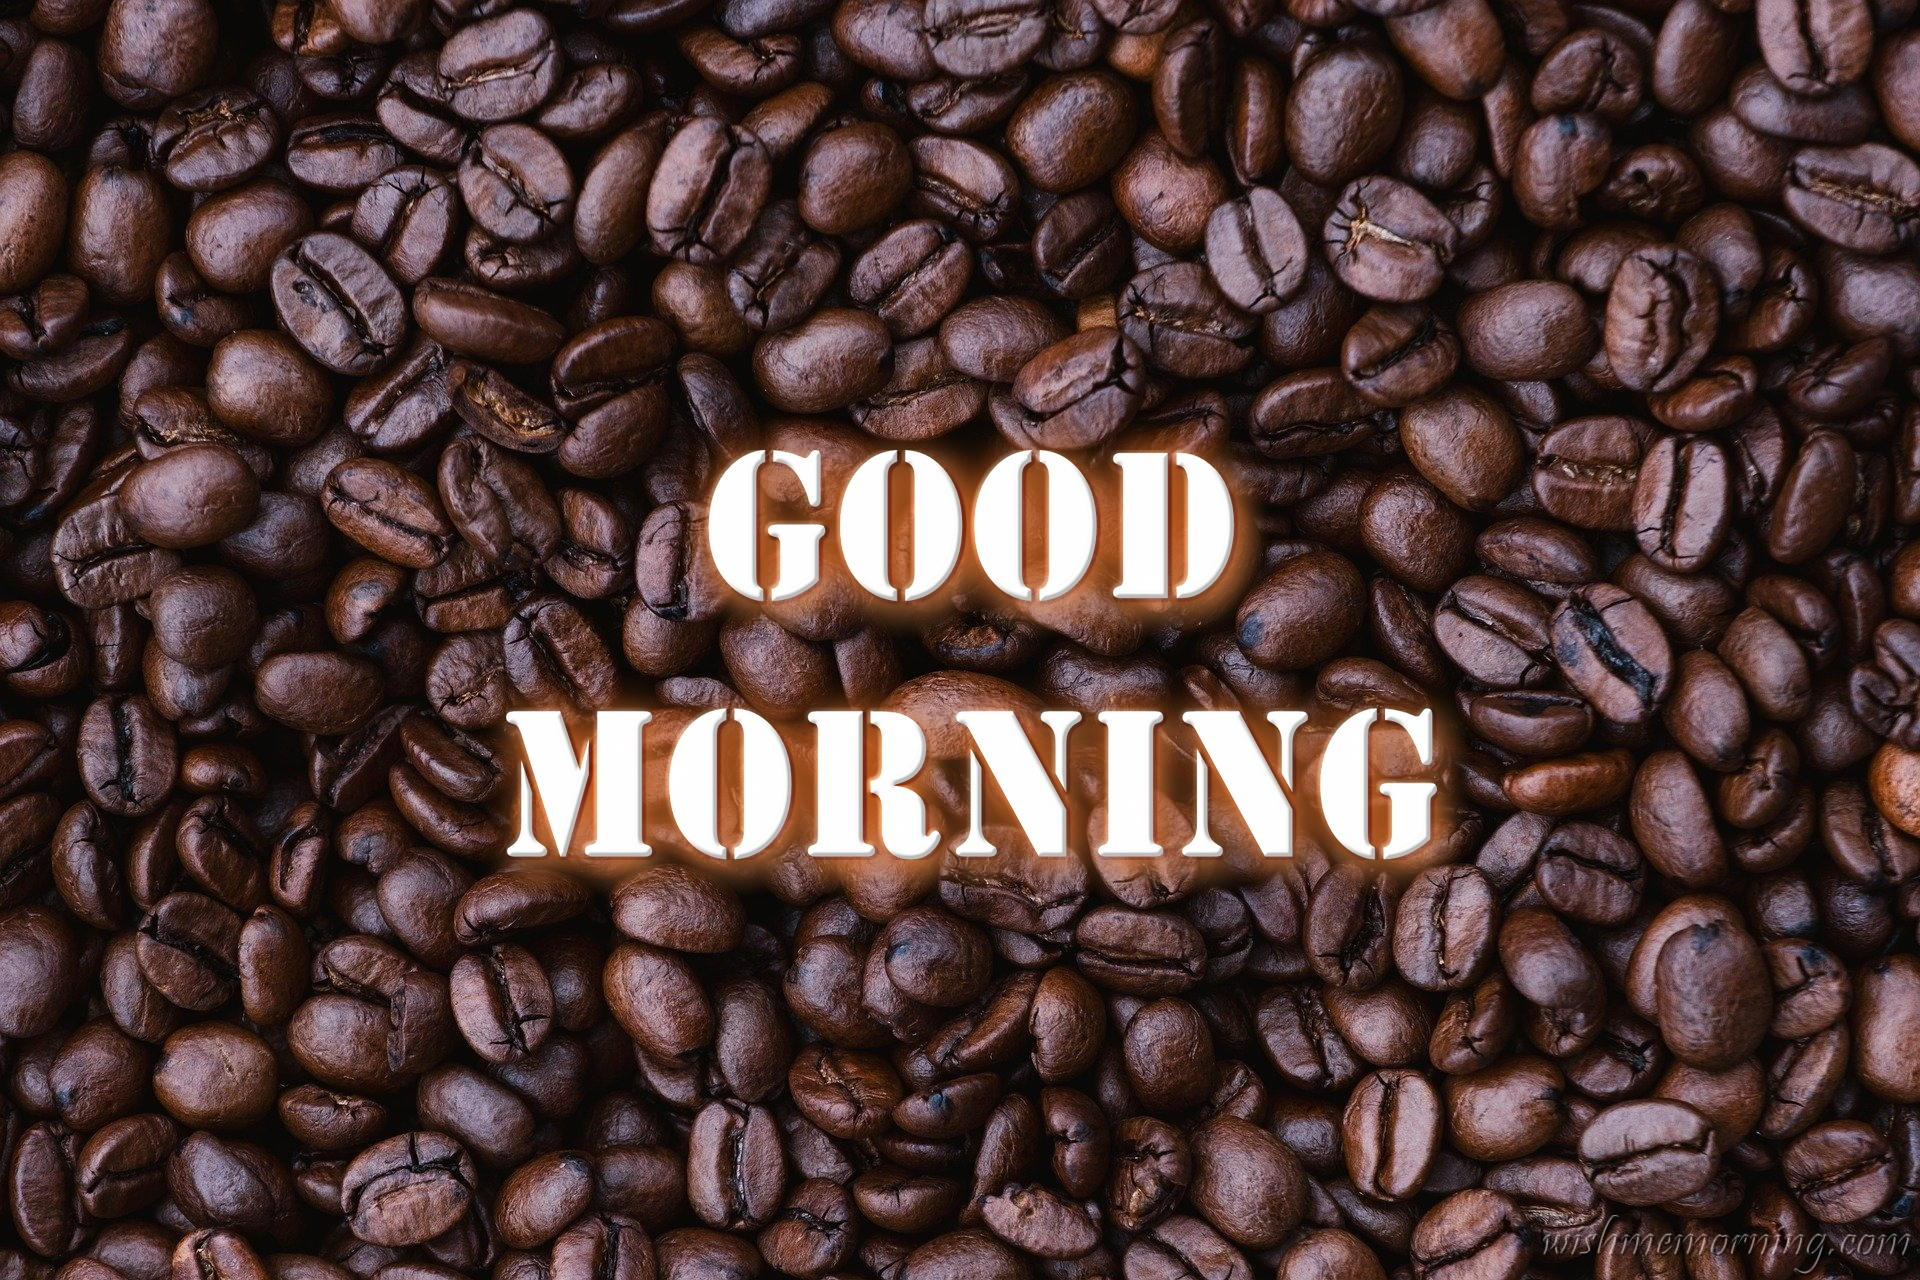 Stencil Good Morning Text Over Coffee Beans Closeup Background